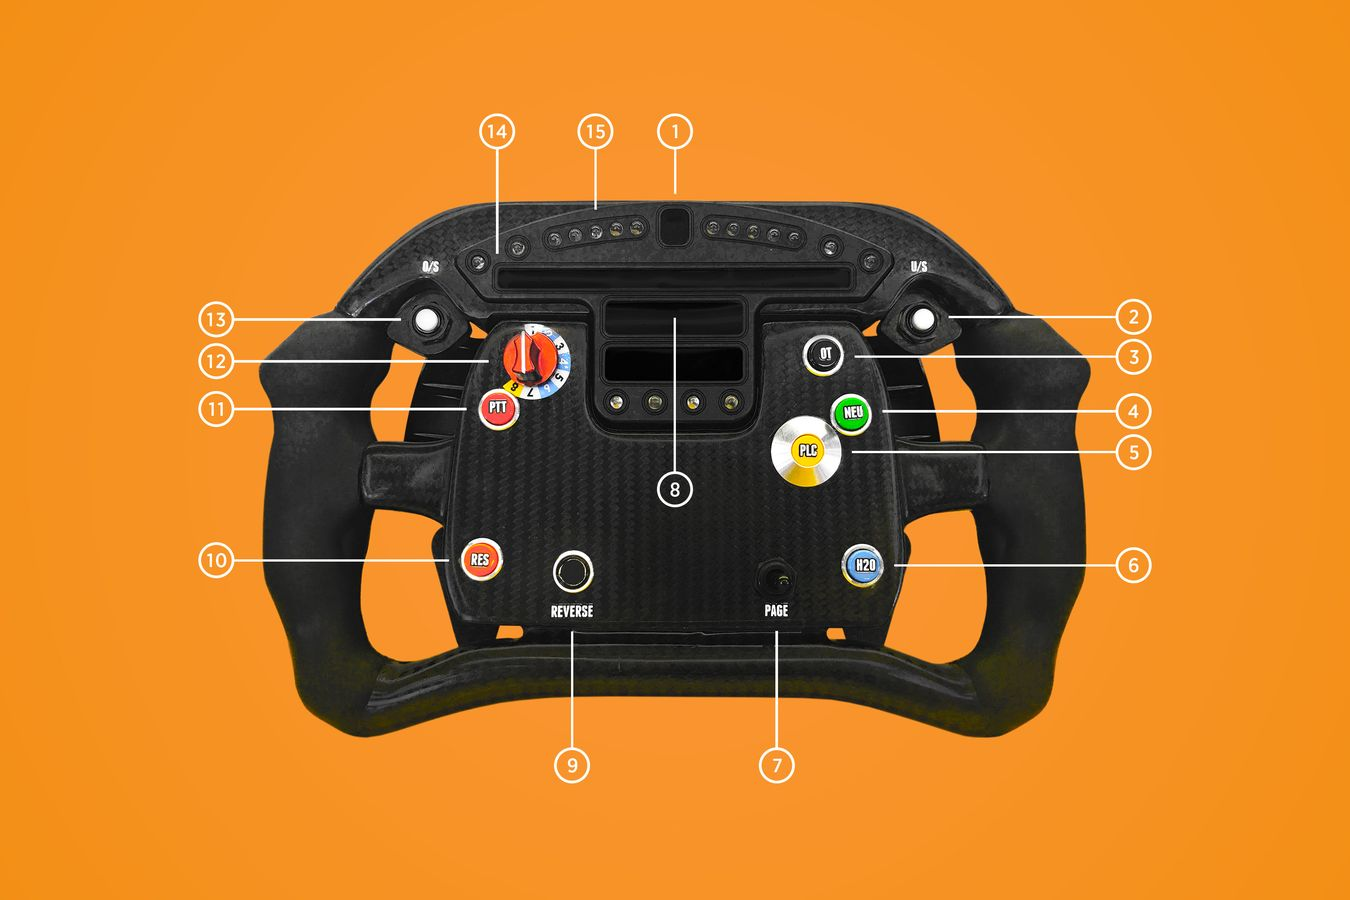 DW12 Indycar Steering Wheel 1 Small Readout Indicates Gear Typically Drivers Swap Between Fifth And Sixth At Indy Depending On Conditions 2